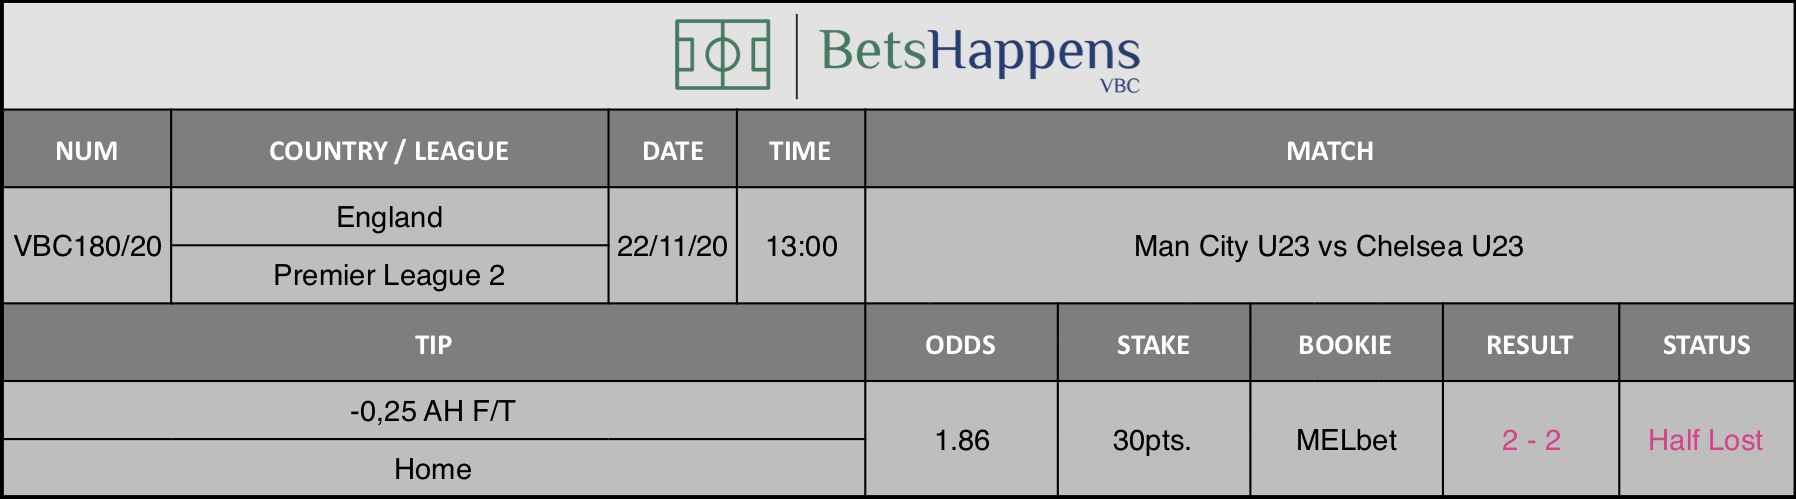 Results of our tip for the Man City U23 vs Chelsea U23 match where -0,25 AH F/T Home is recommended.